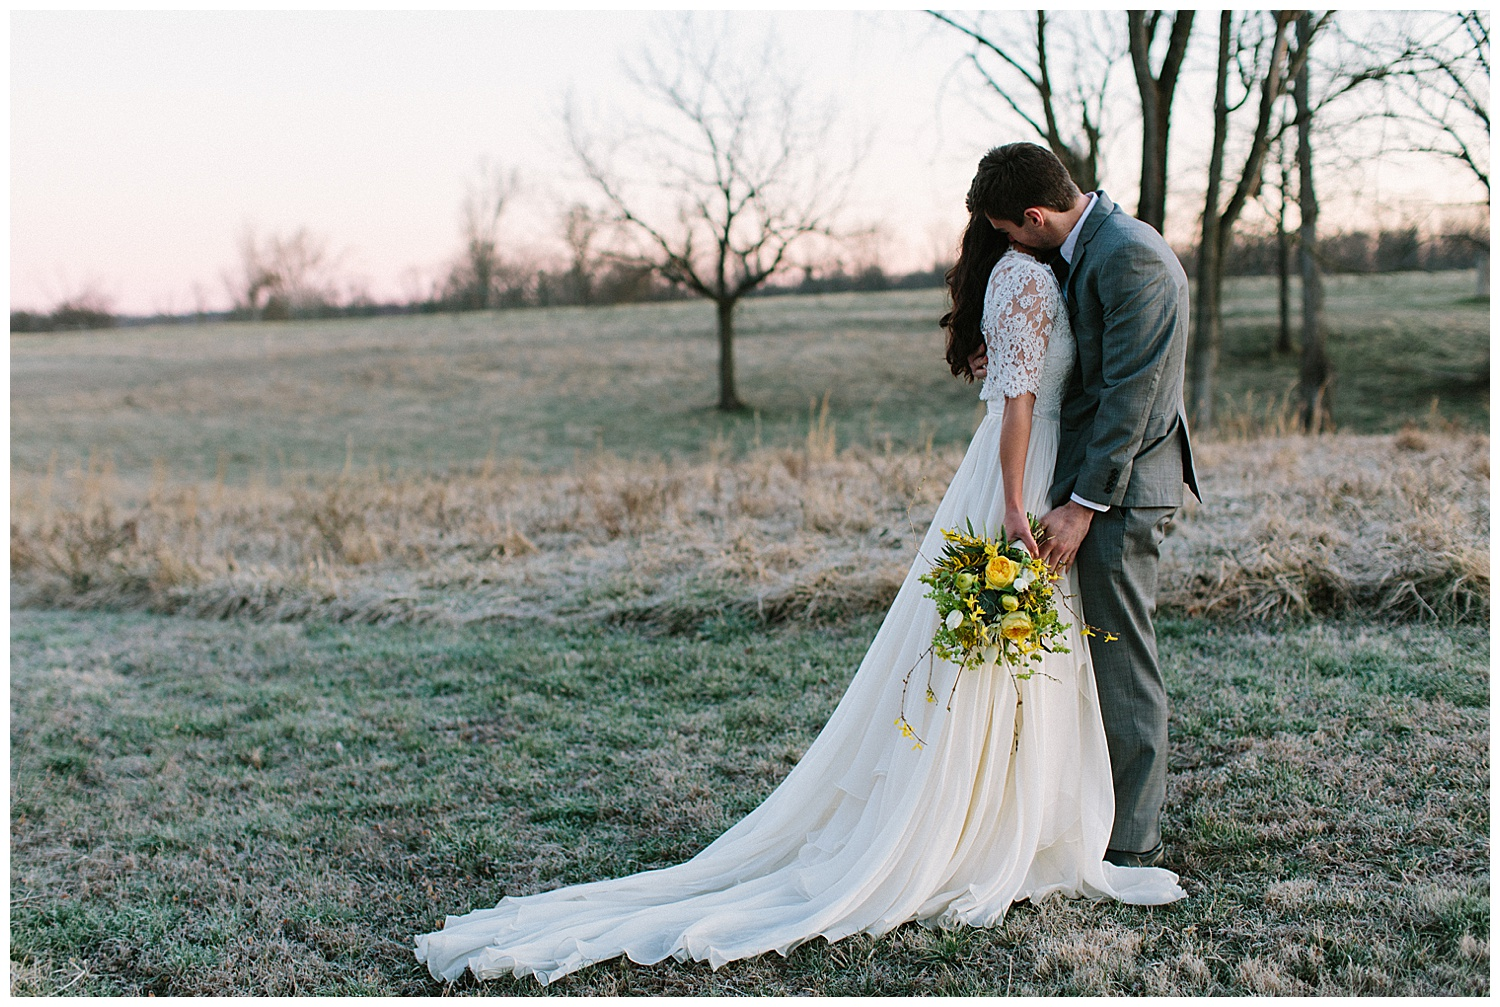 trent.and.kendra.photography.foxhollow.farm.elopement-2.jpg